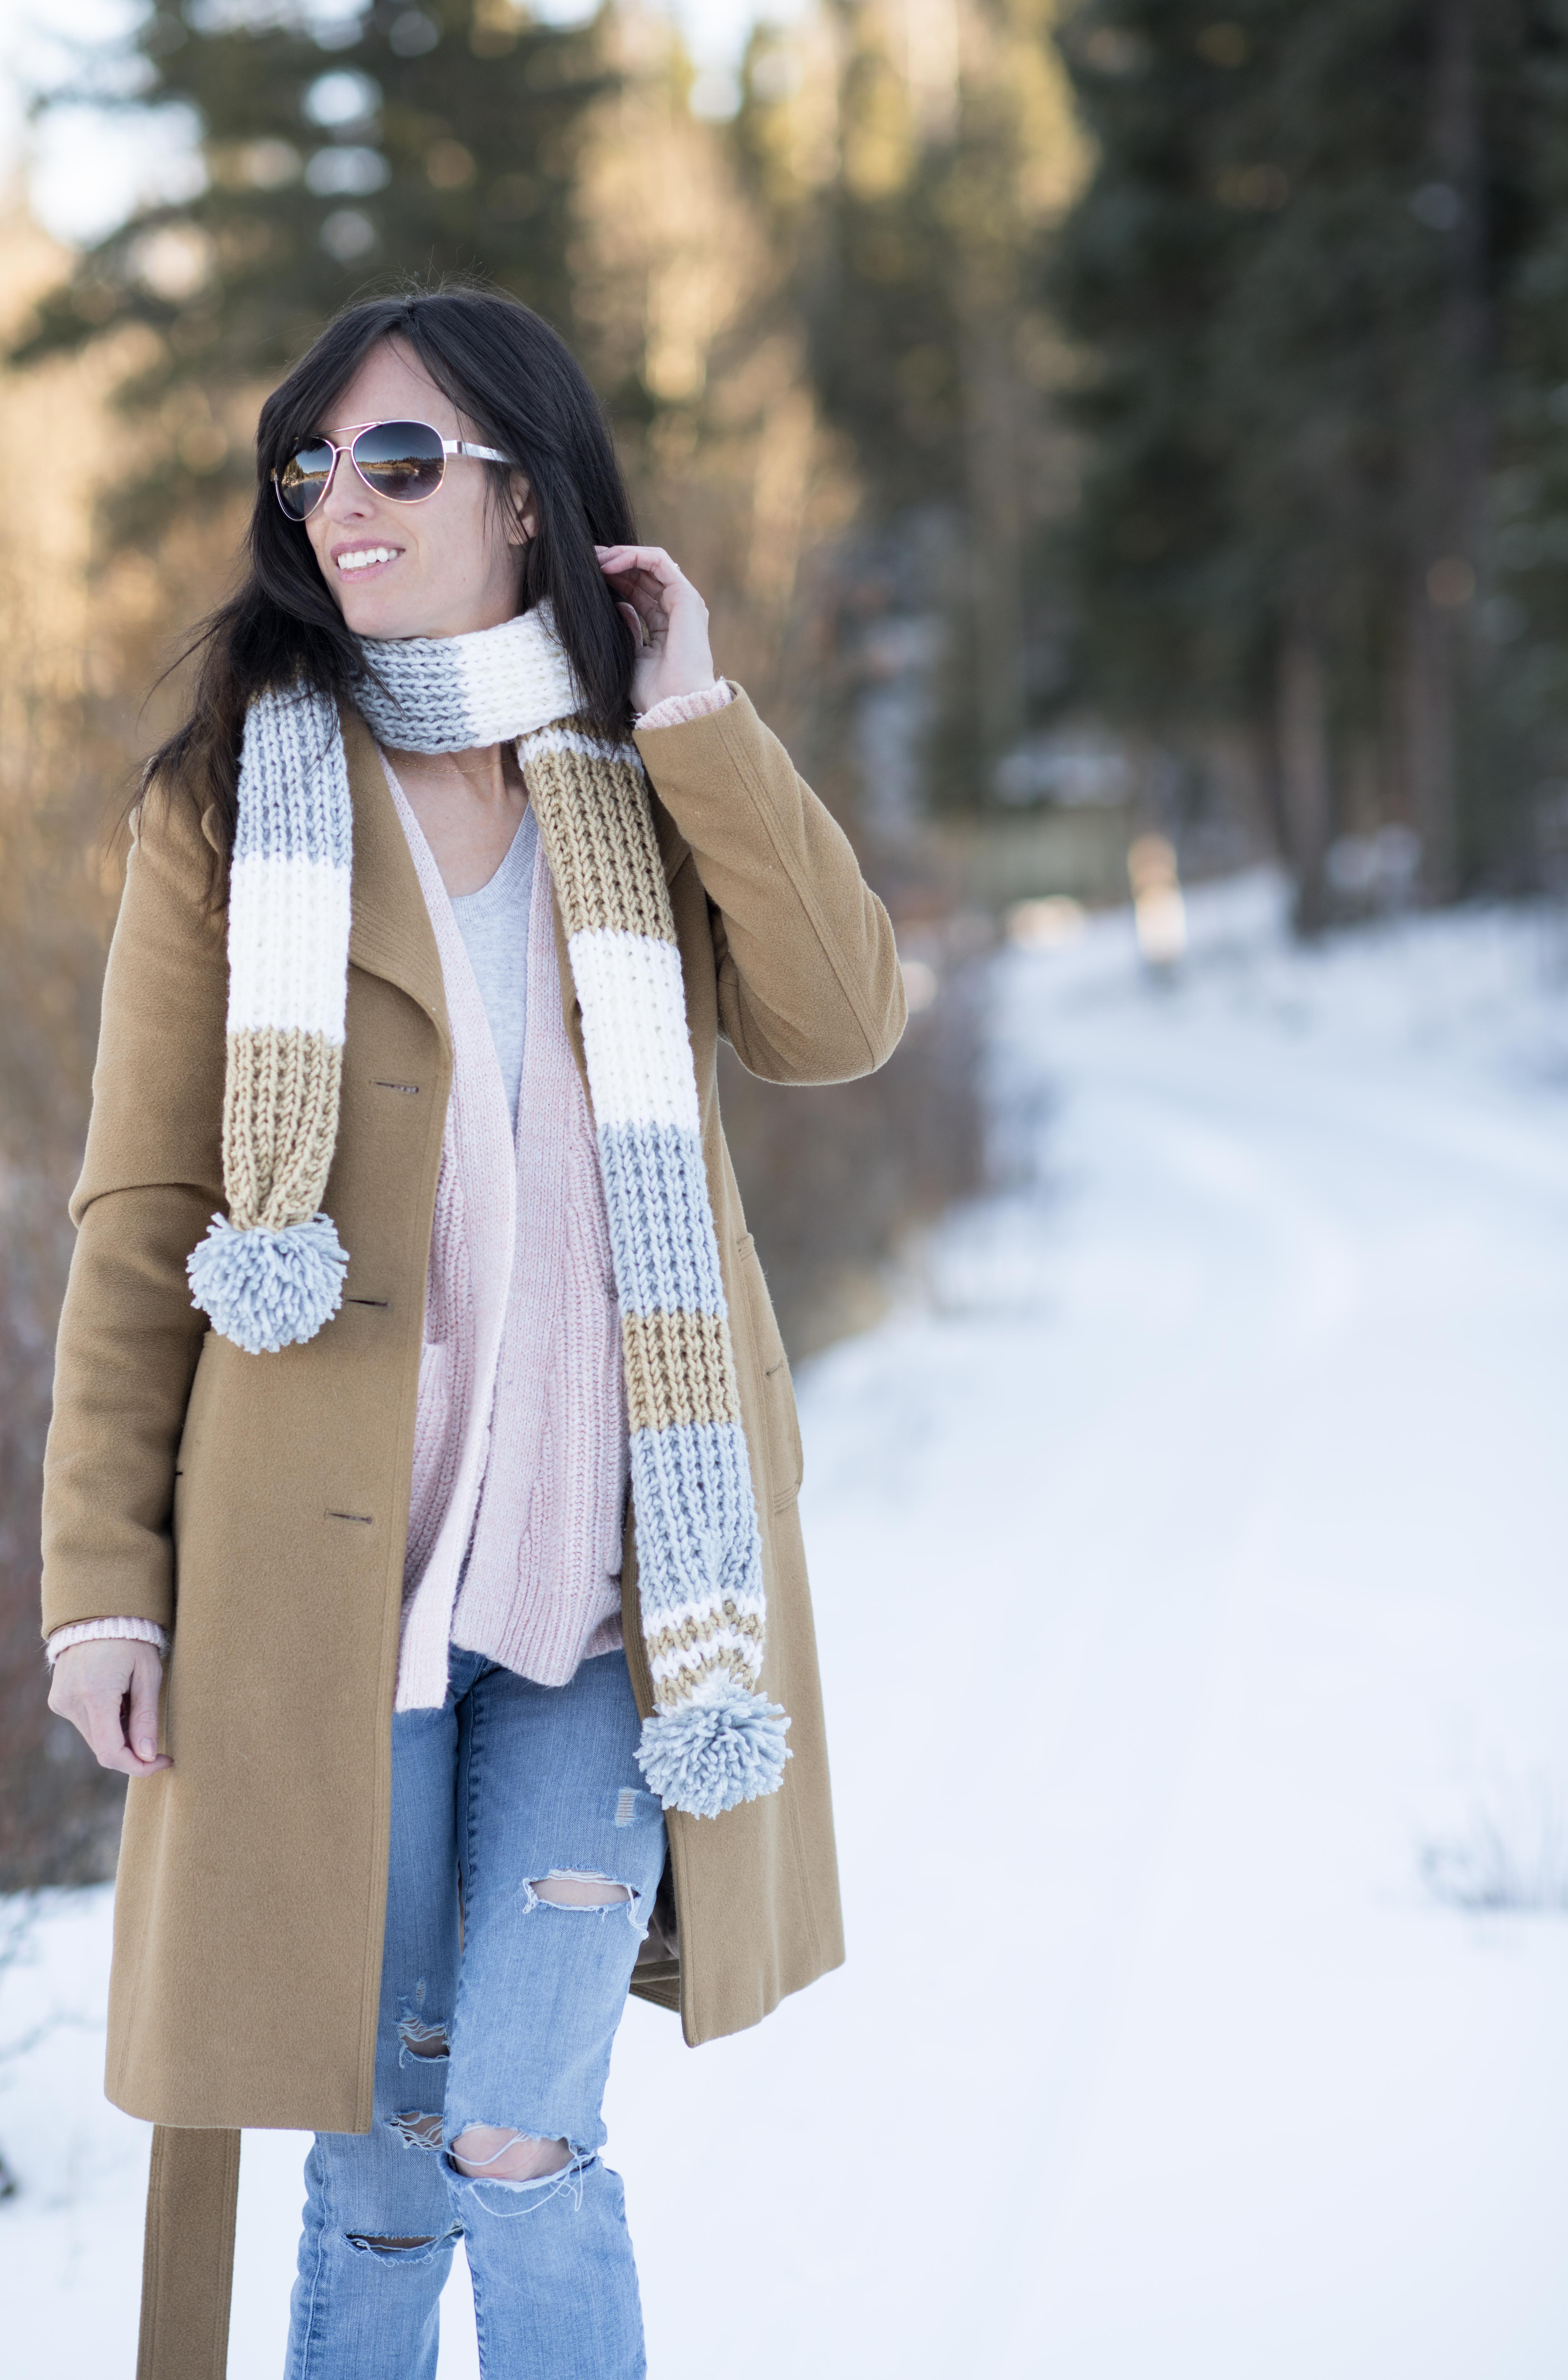 Fairbanks Pommed Knit Scarf Pattern – Mama In A Stitch